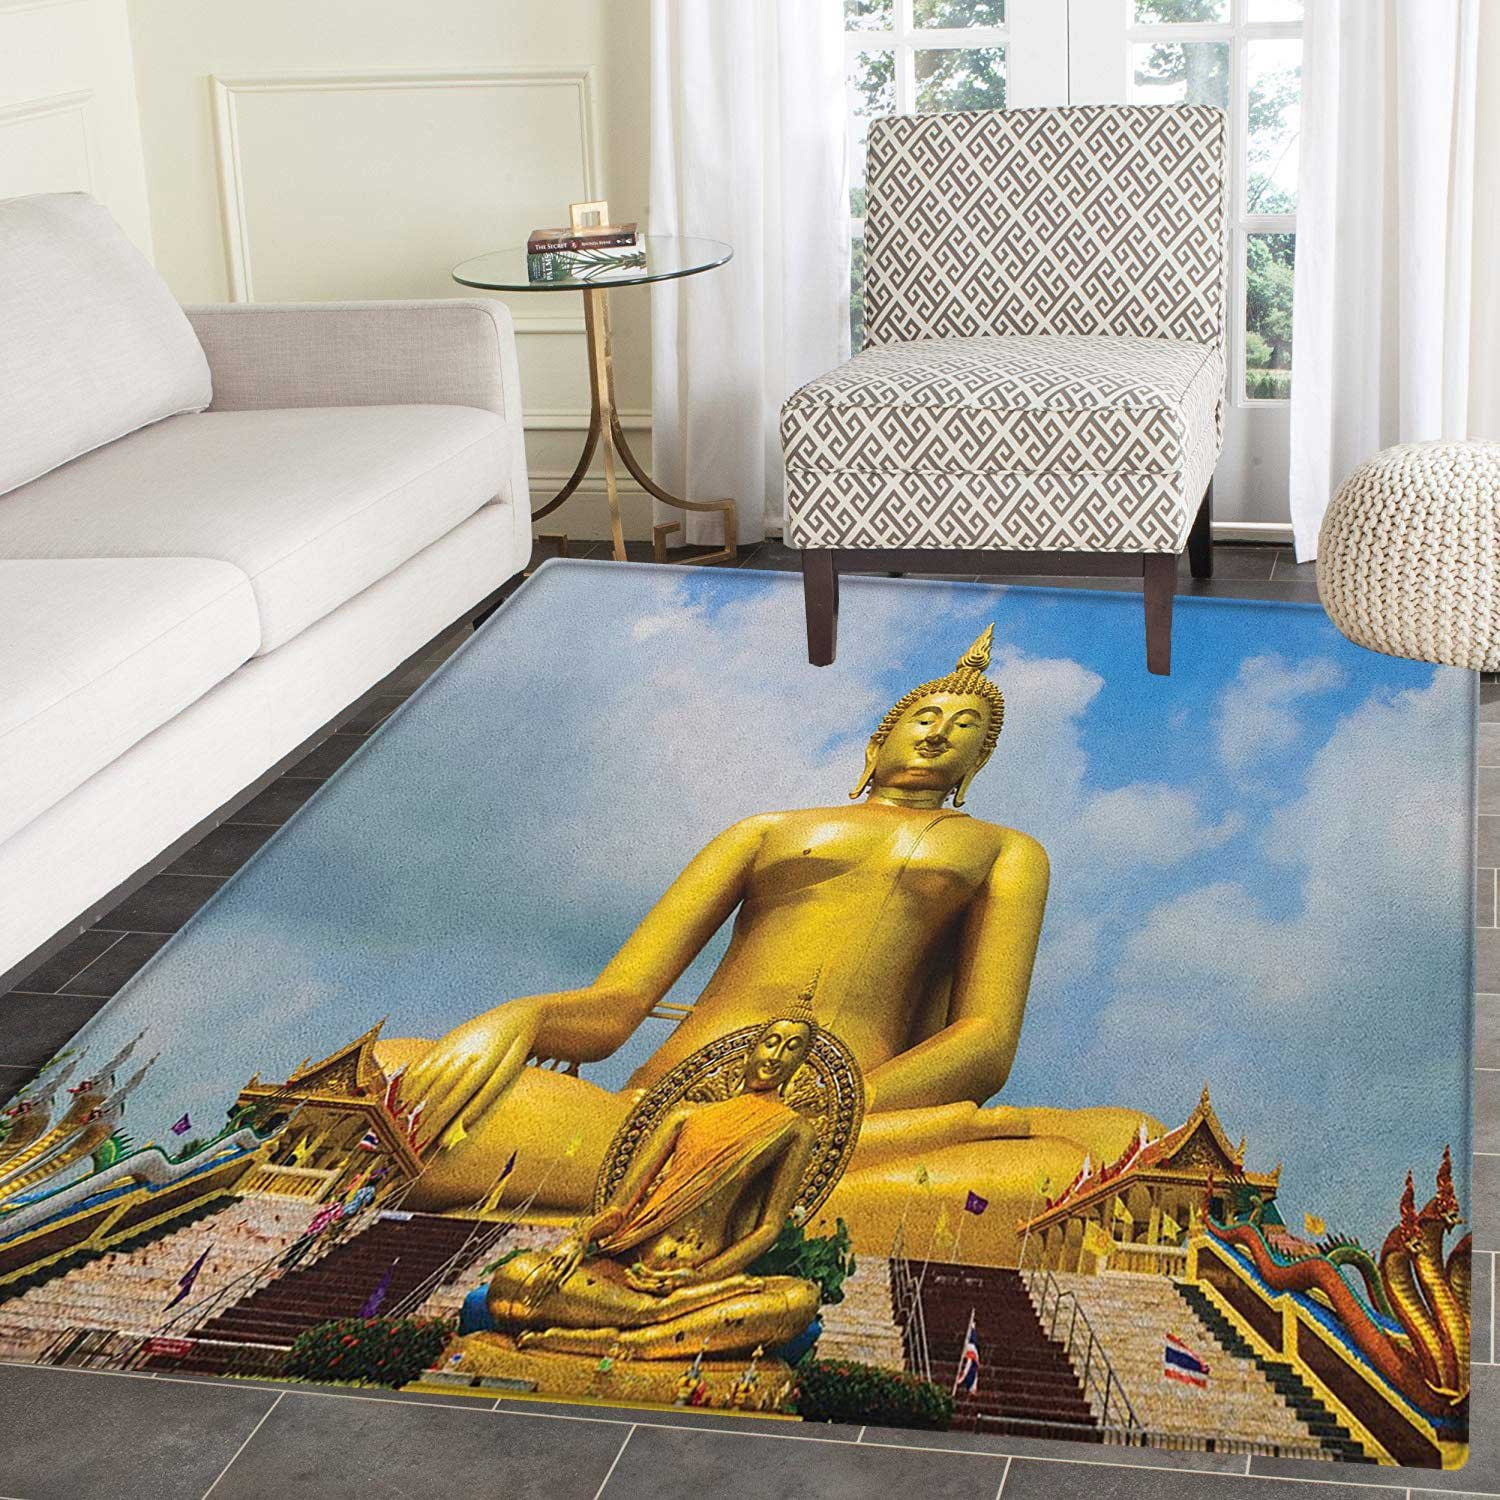 Asian Area Rug Carpet Biggest Golden Religious Statue at the Temple in Thai Orient Sage Asian Style Design Customize door mats for home Mat 2'x3' Multicolor by smallbeefly